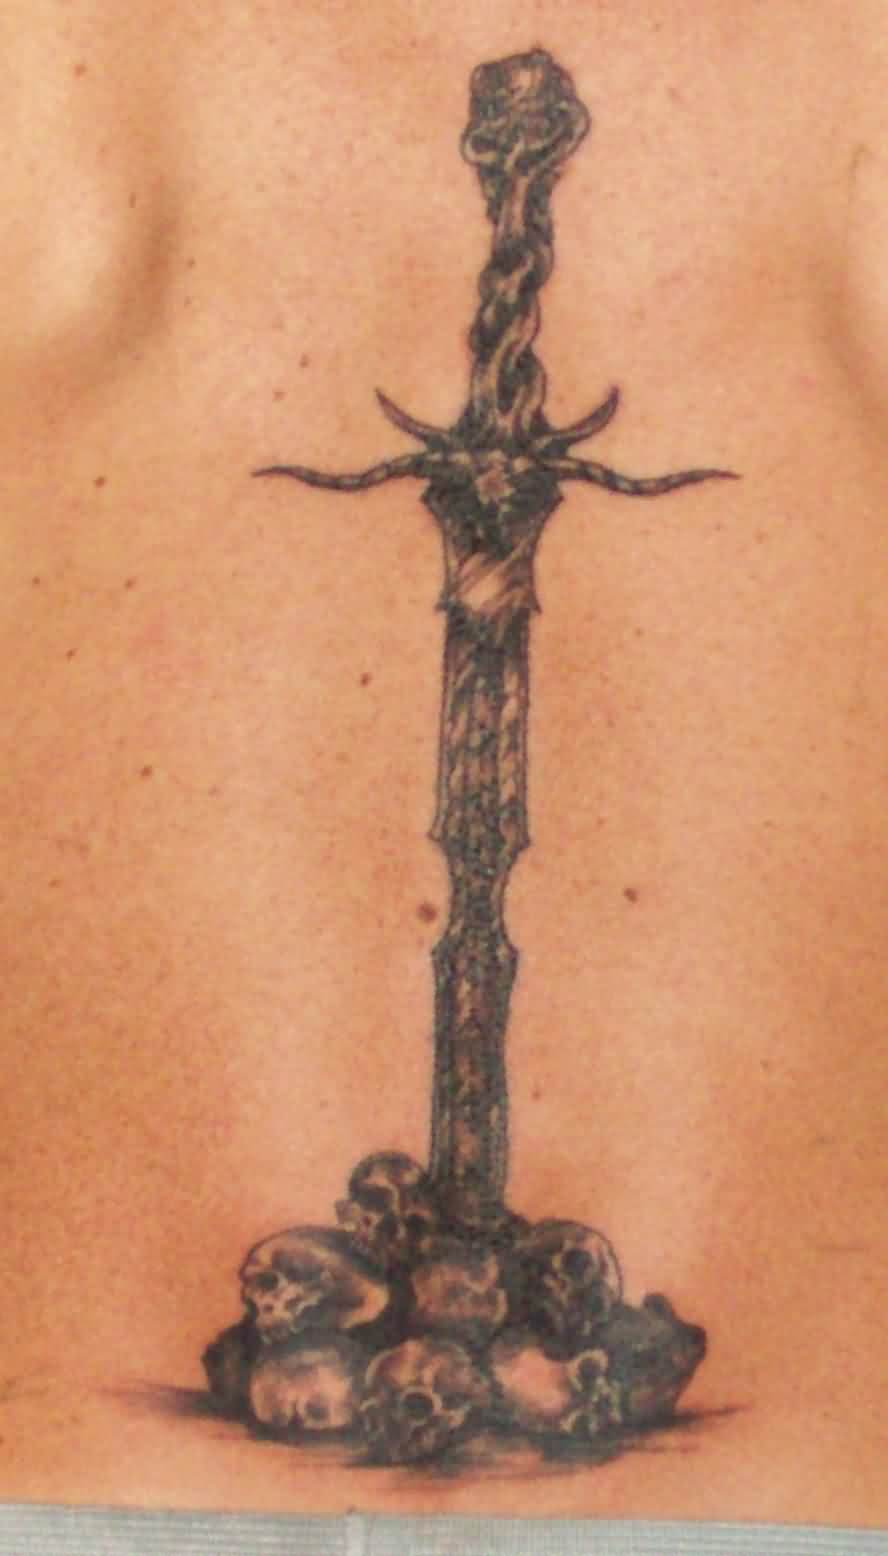 Fantasy Sword And Skull Tattoos On Back